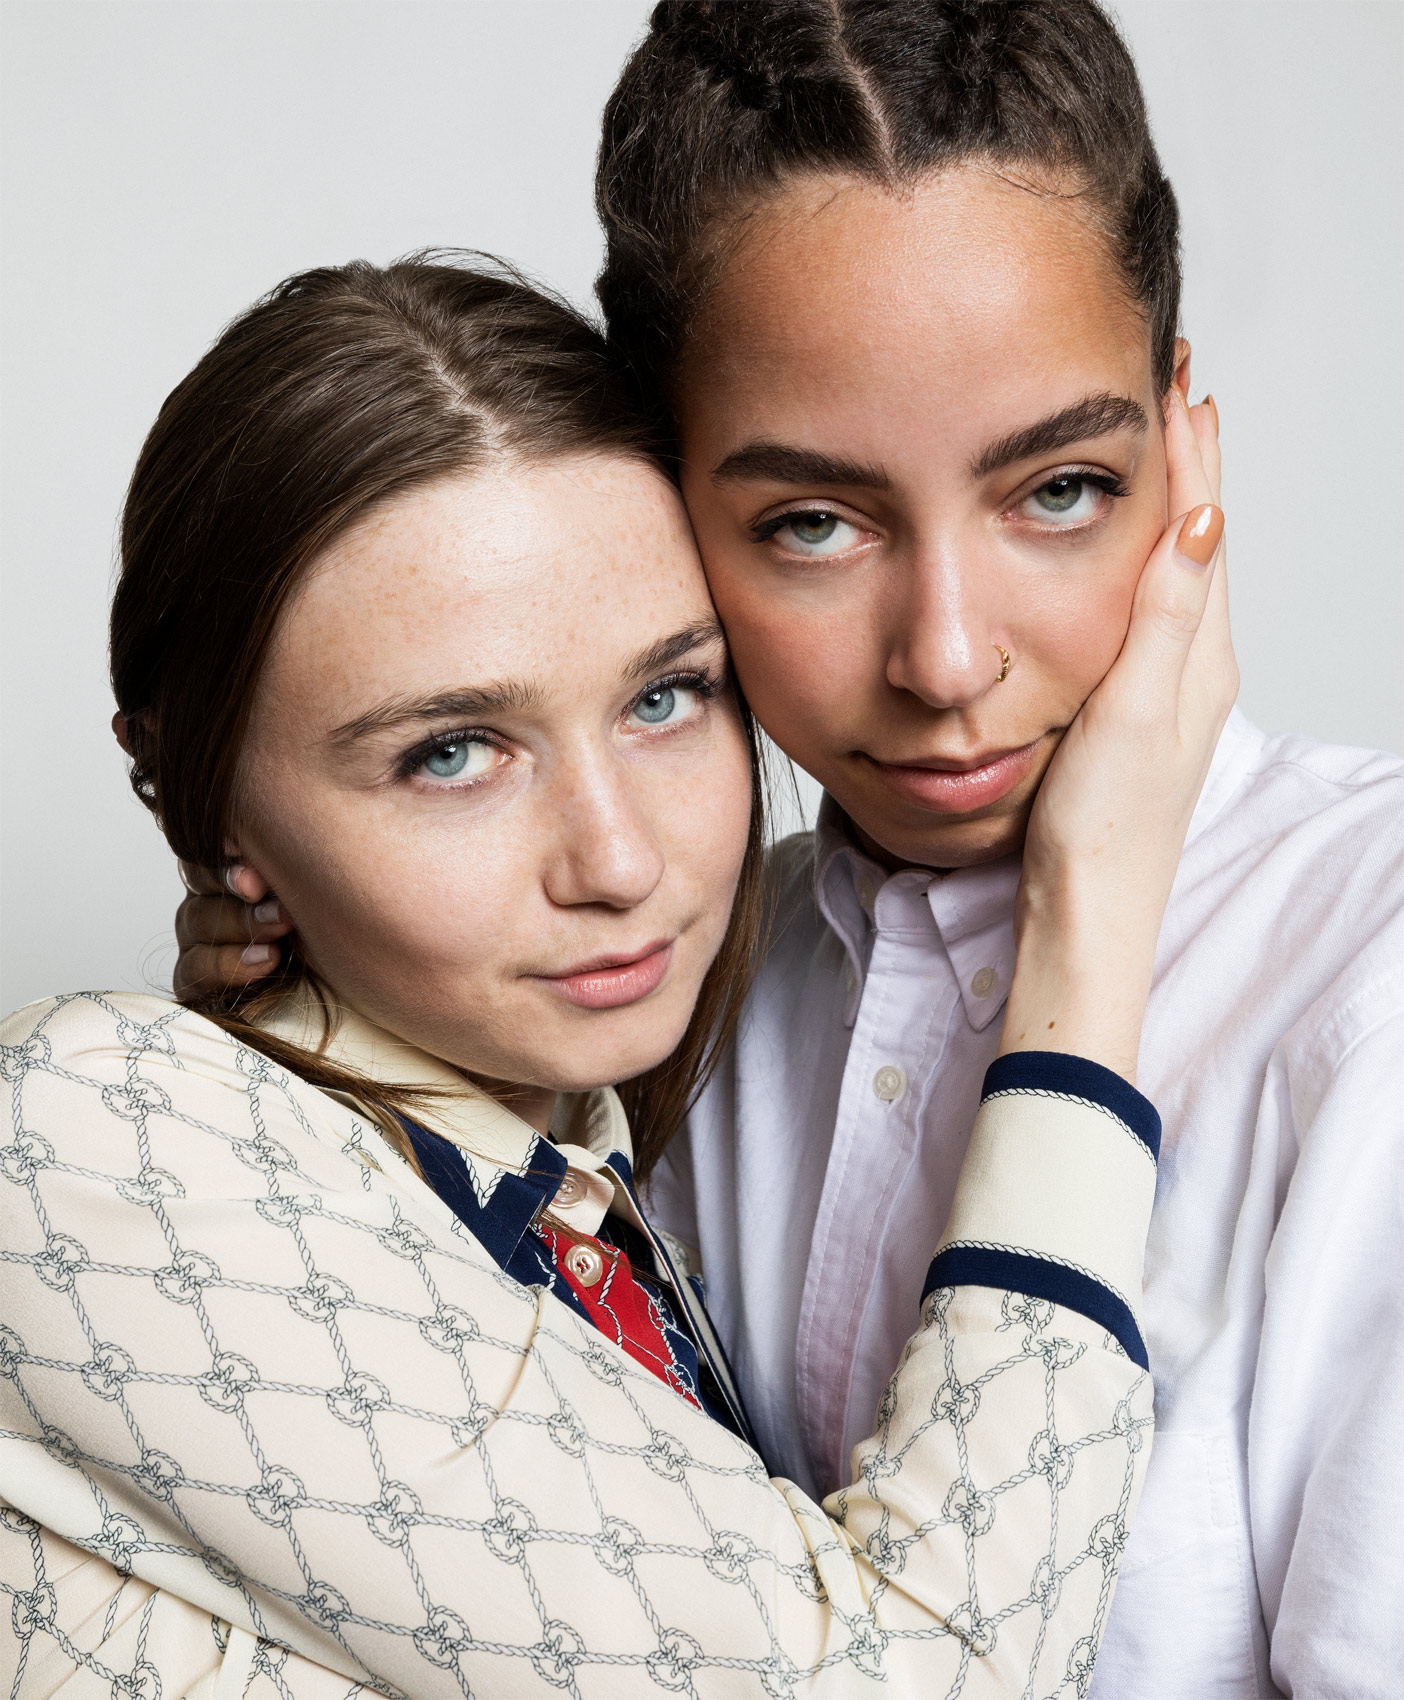 Hayley Law and Jessica Barden